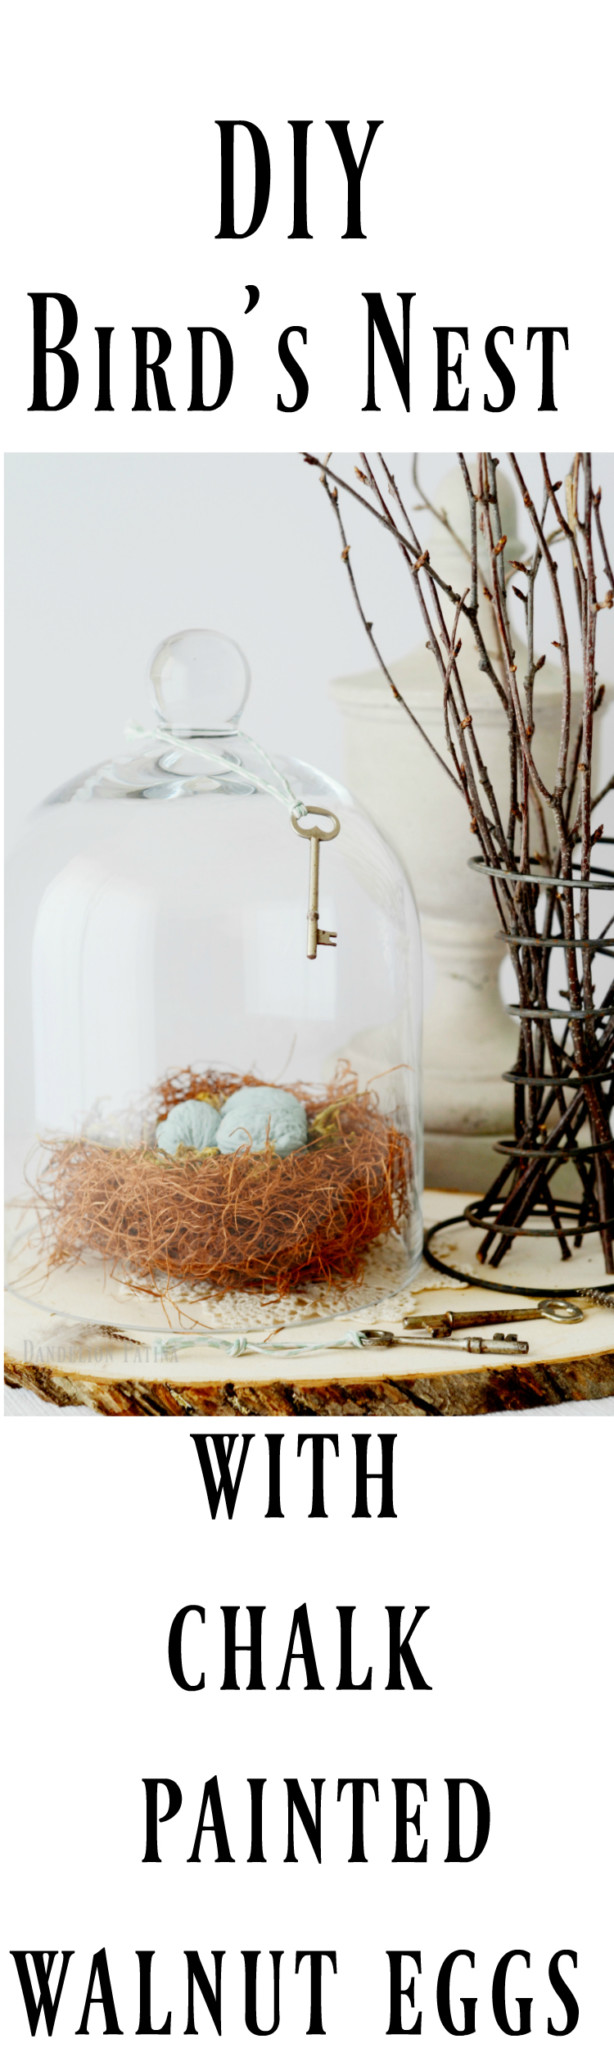 bird nest woven with charm. DIY Annie Sloan chalk painted eggs